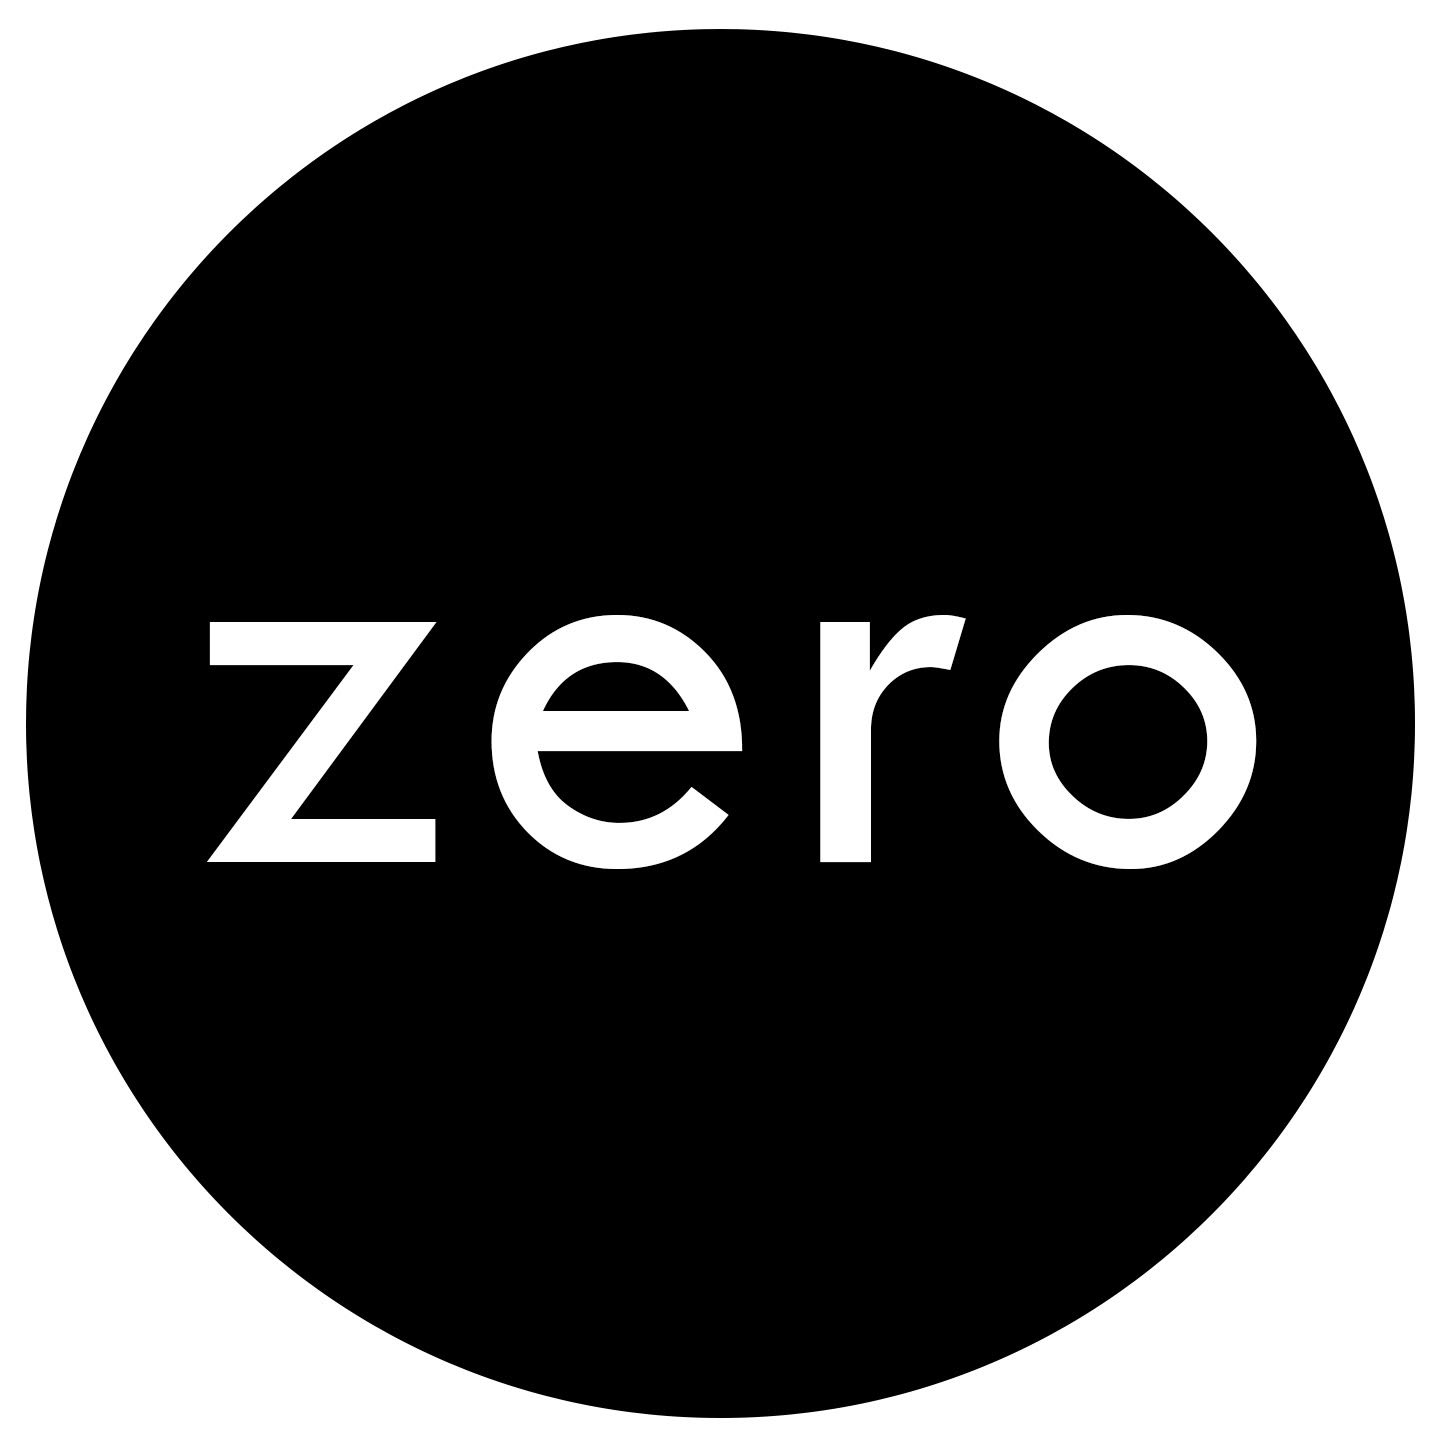 CA - I cannot find the Zero SG app on the Play store nor App